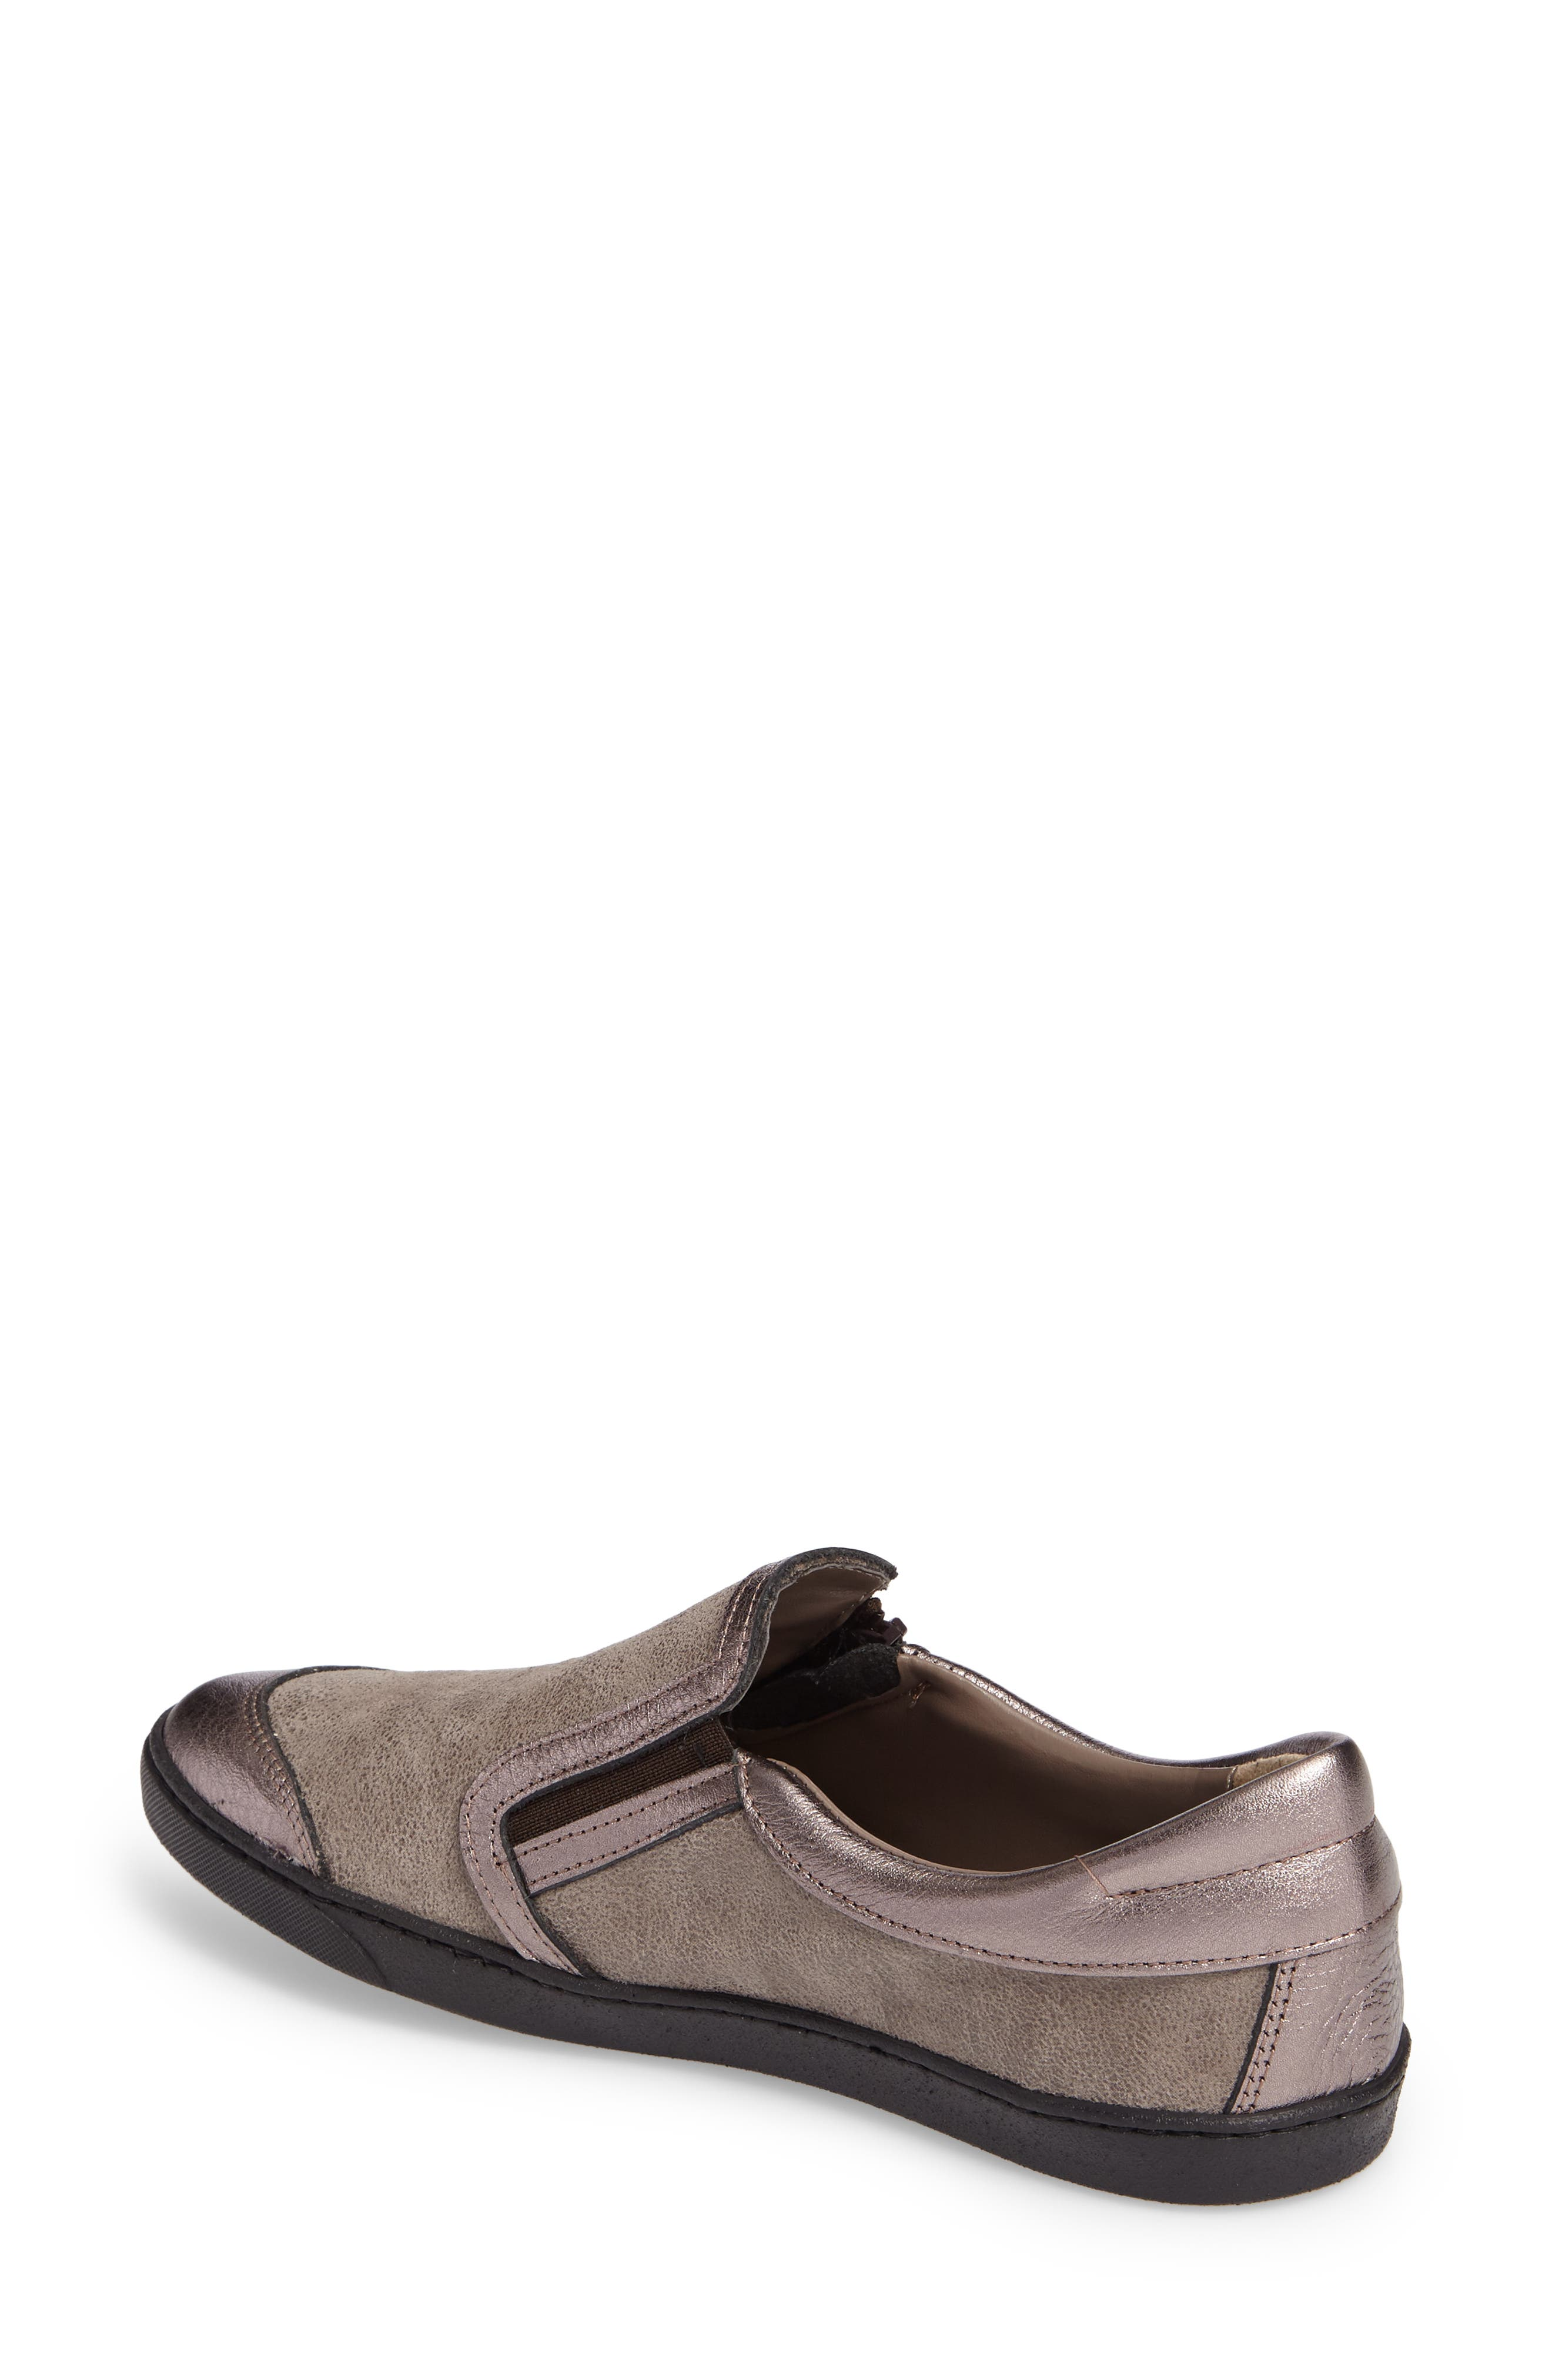 Fiorin Slip-On Sneaker,                             Alternate thumbnail 2, color,                             Taupe Fabric